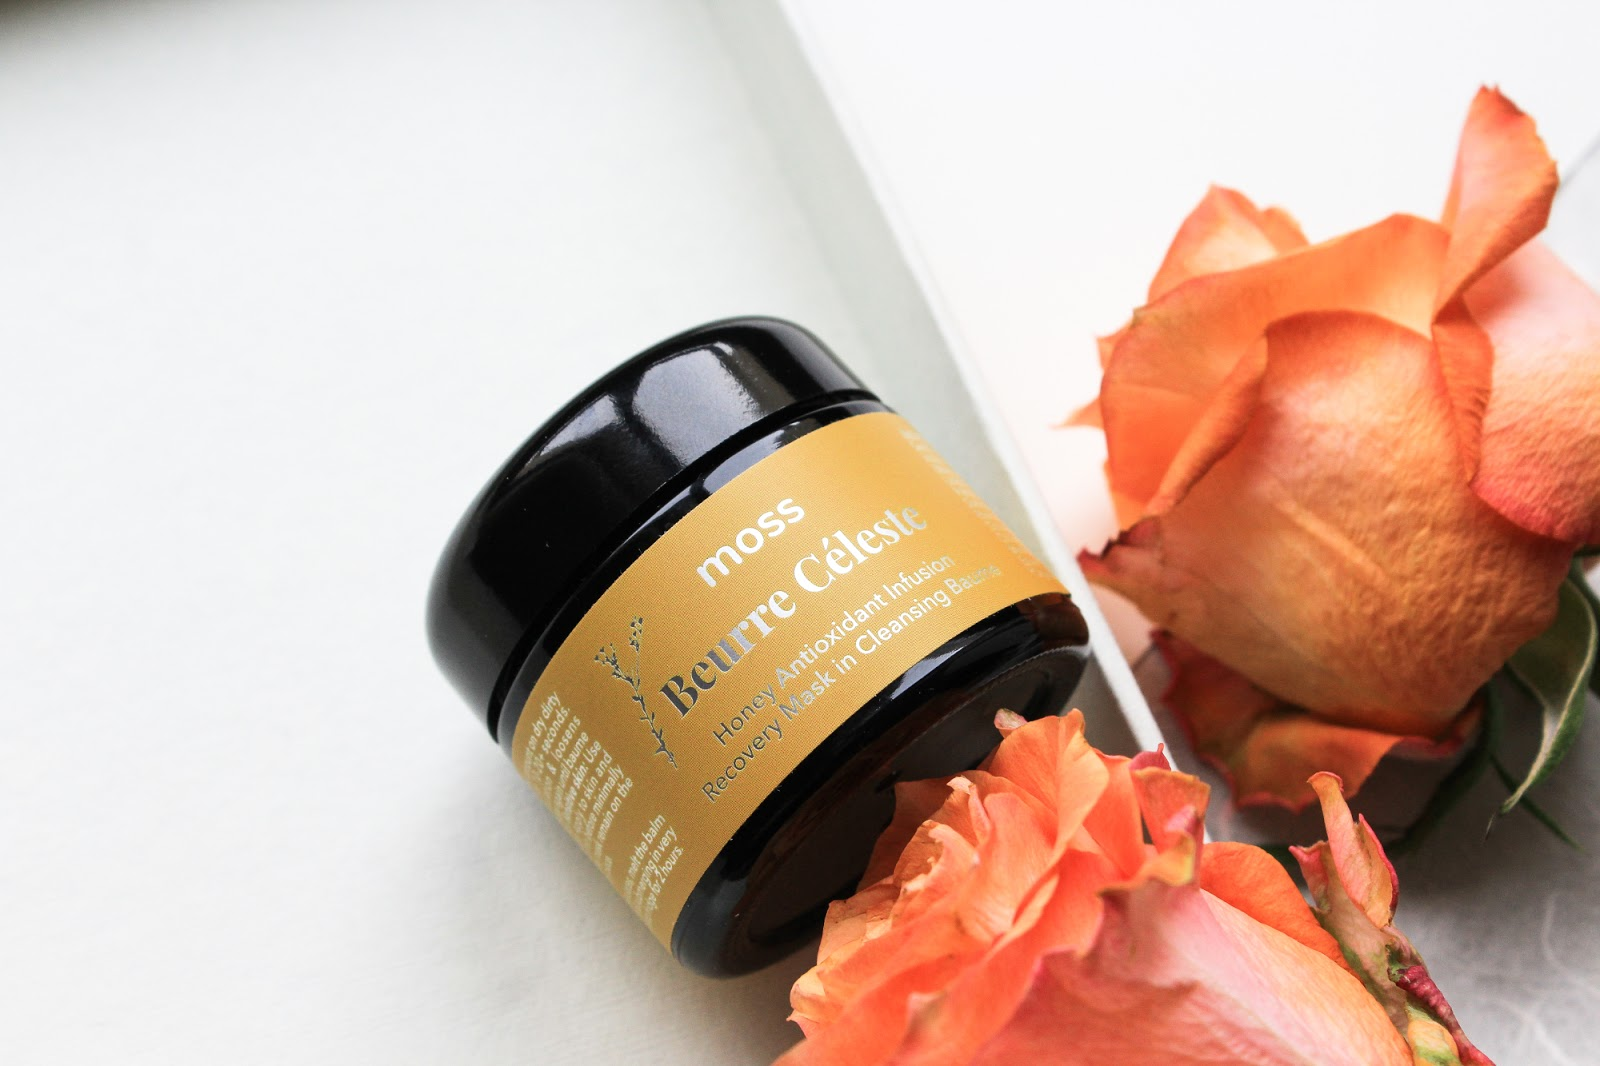 MOSS Beurre Céleste Honey Antioxidant Infusion Recovery Mask in Cleansing Baume. Cleansing Balm. Boxwalla Beauty Box June 2018.